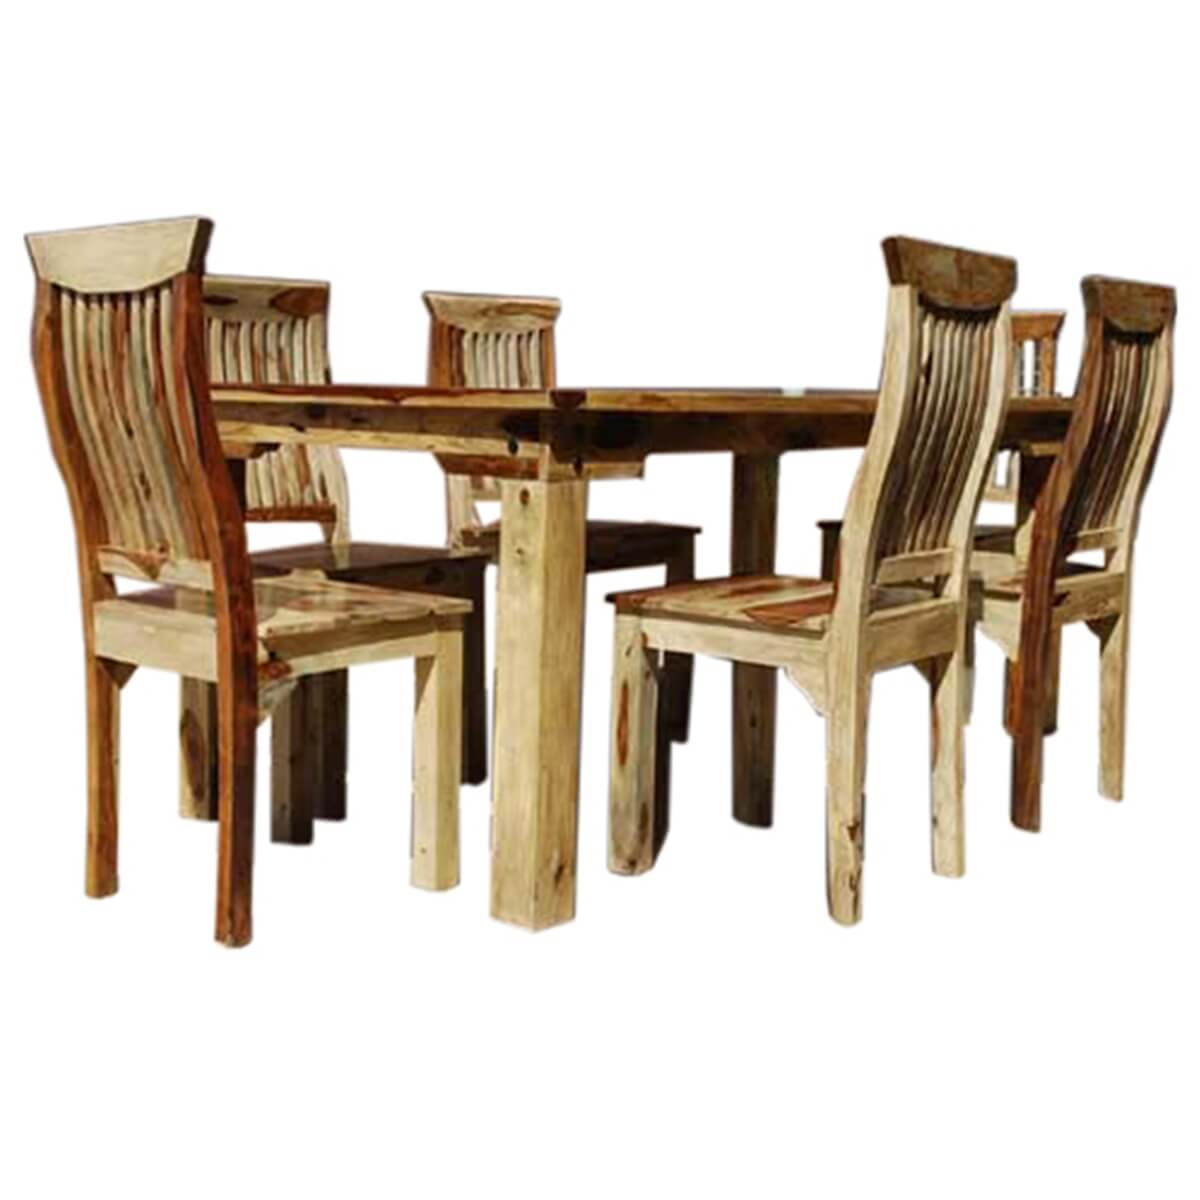 7 piece formal dining room kitchen table chair set rustic